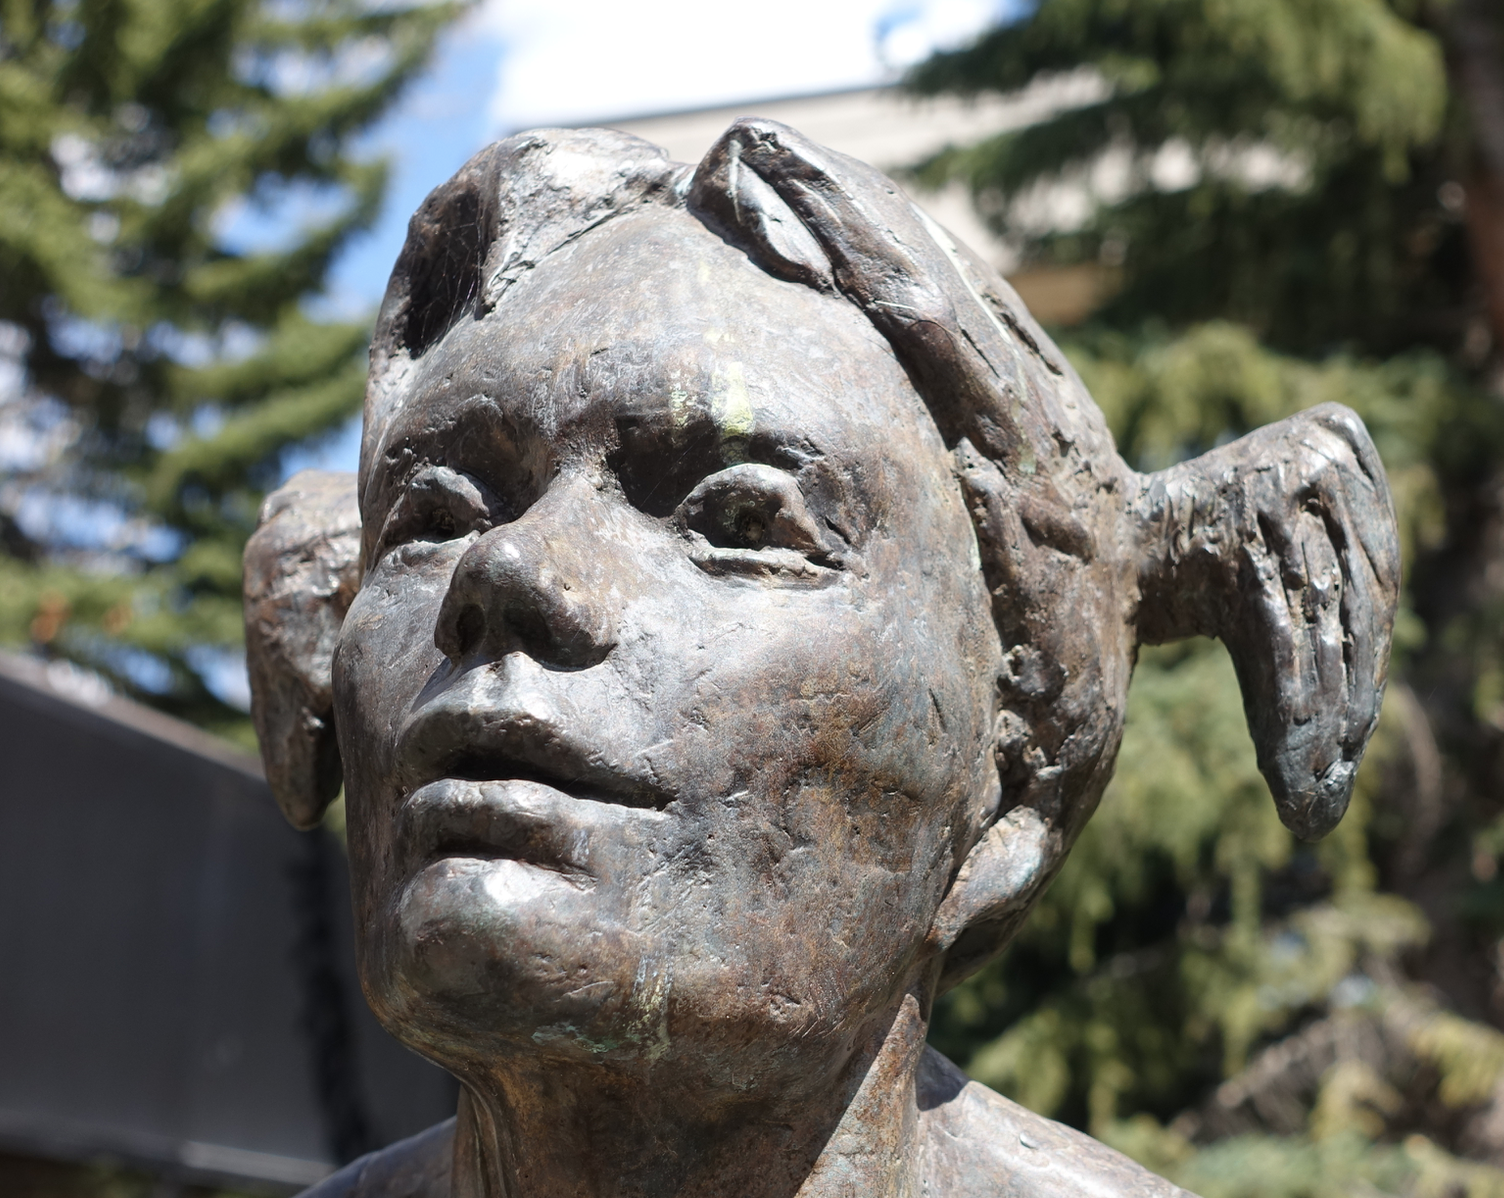 L- Straddle, Marc Mellon, bronze, University of Calgary